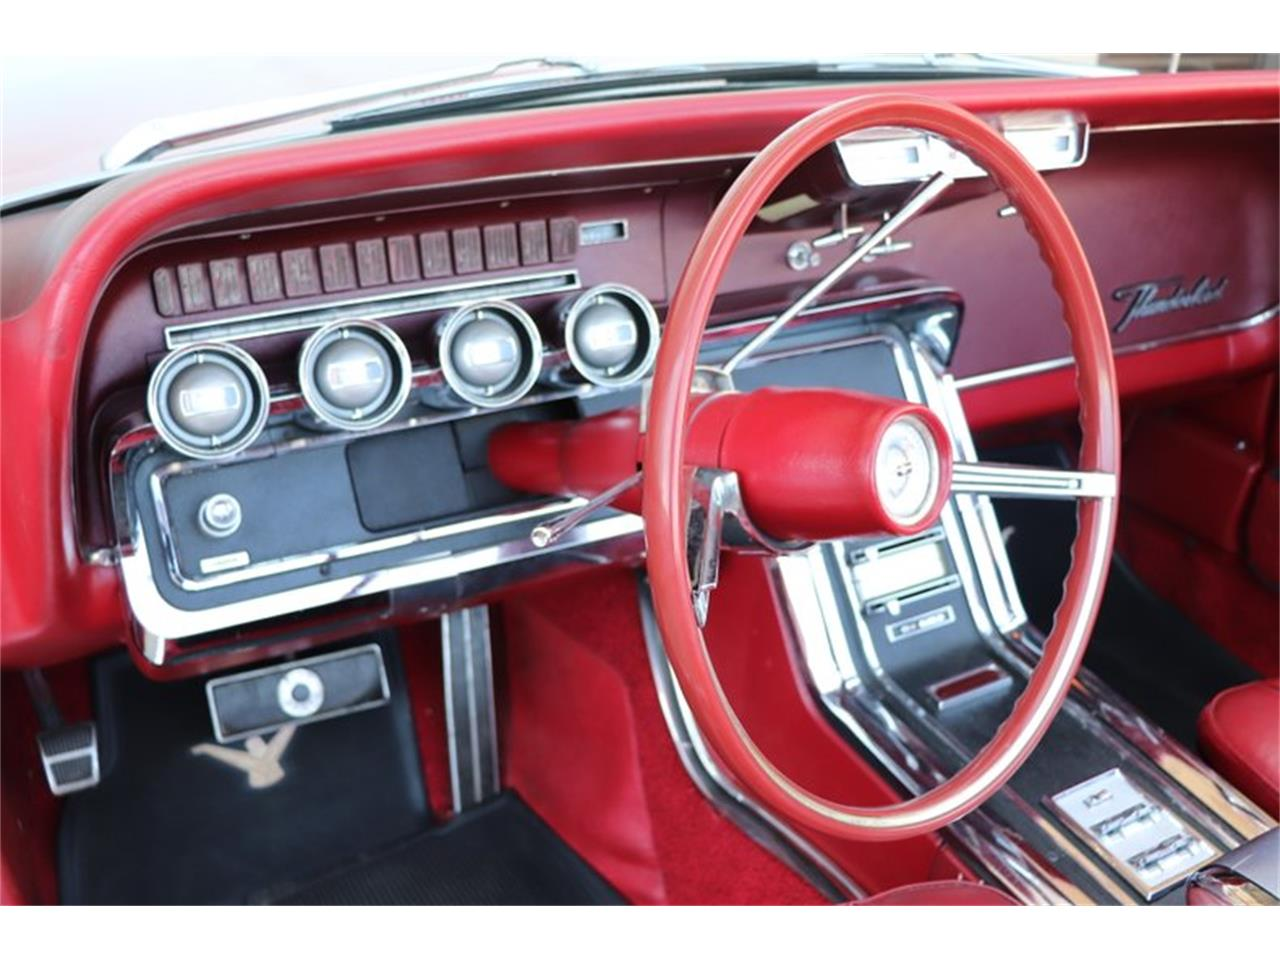 Large Picture of Classic 1966 Ford Thunderbird located in Illinois Offered by Midwest Car Exchange - Q0AO